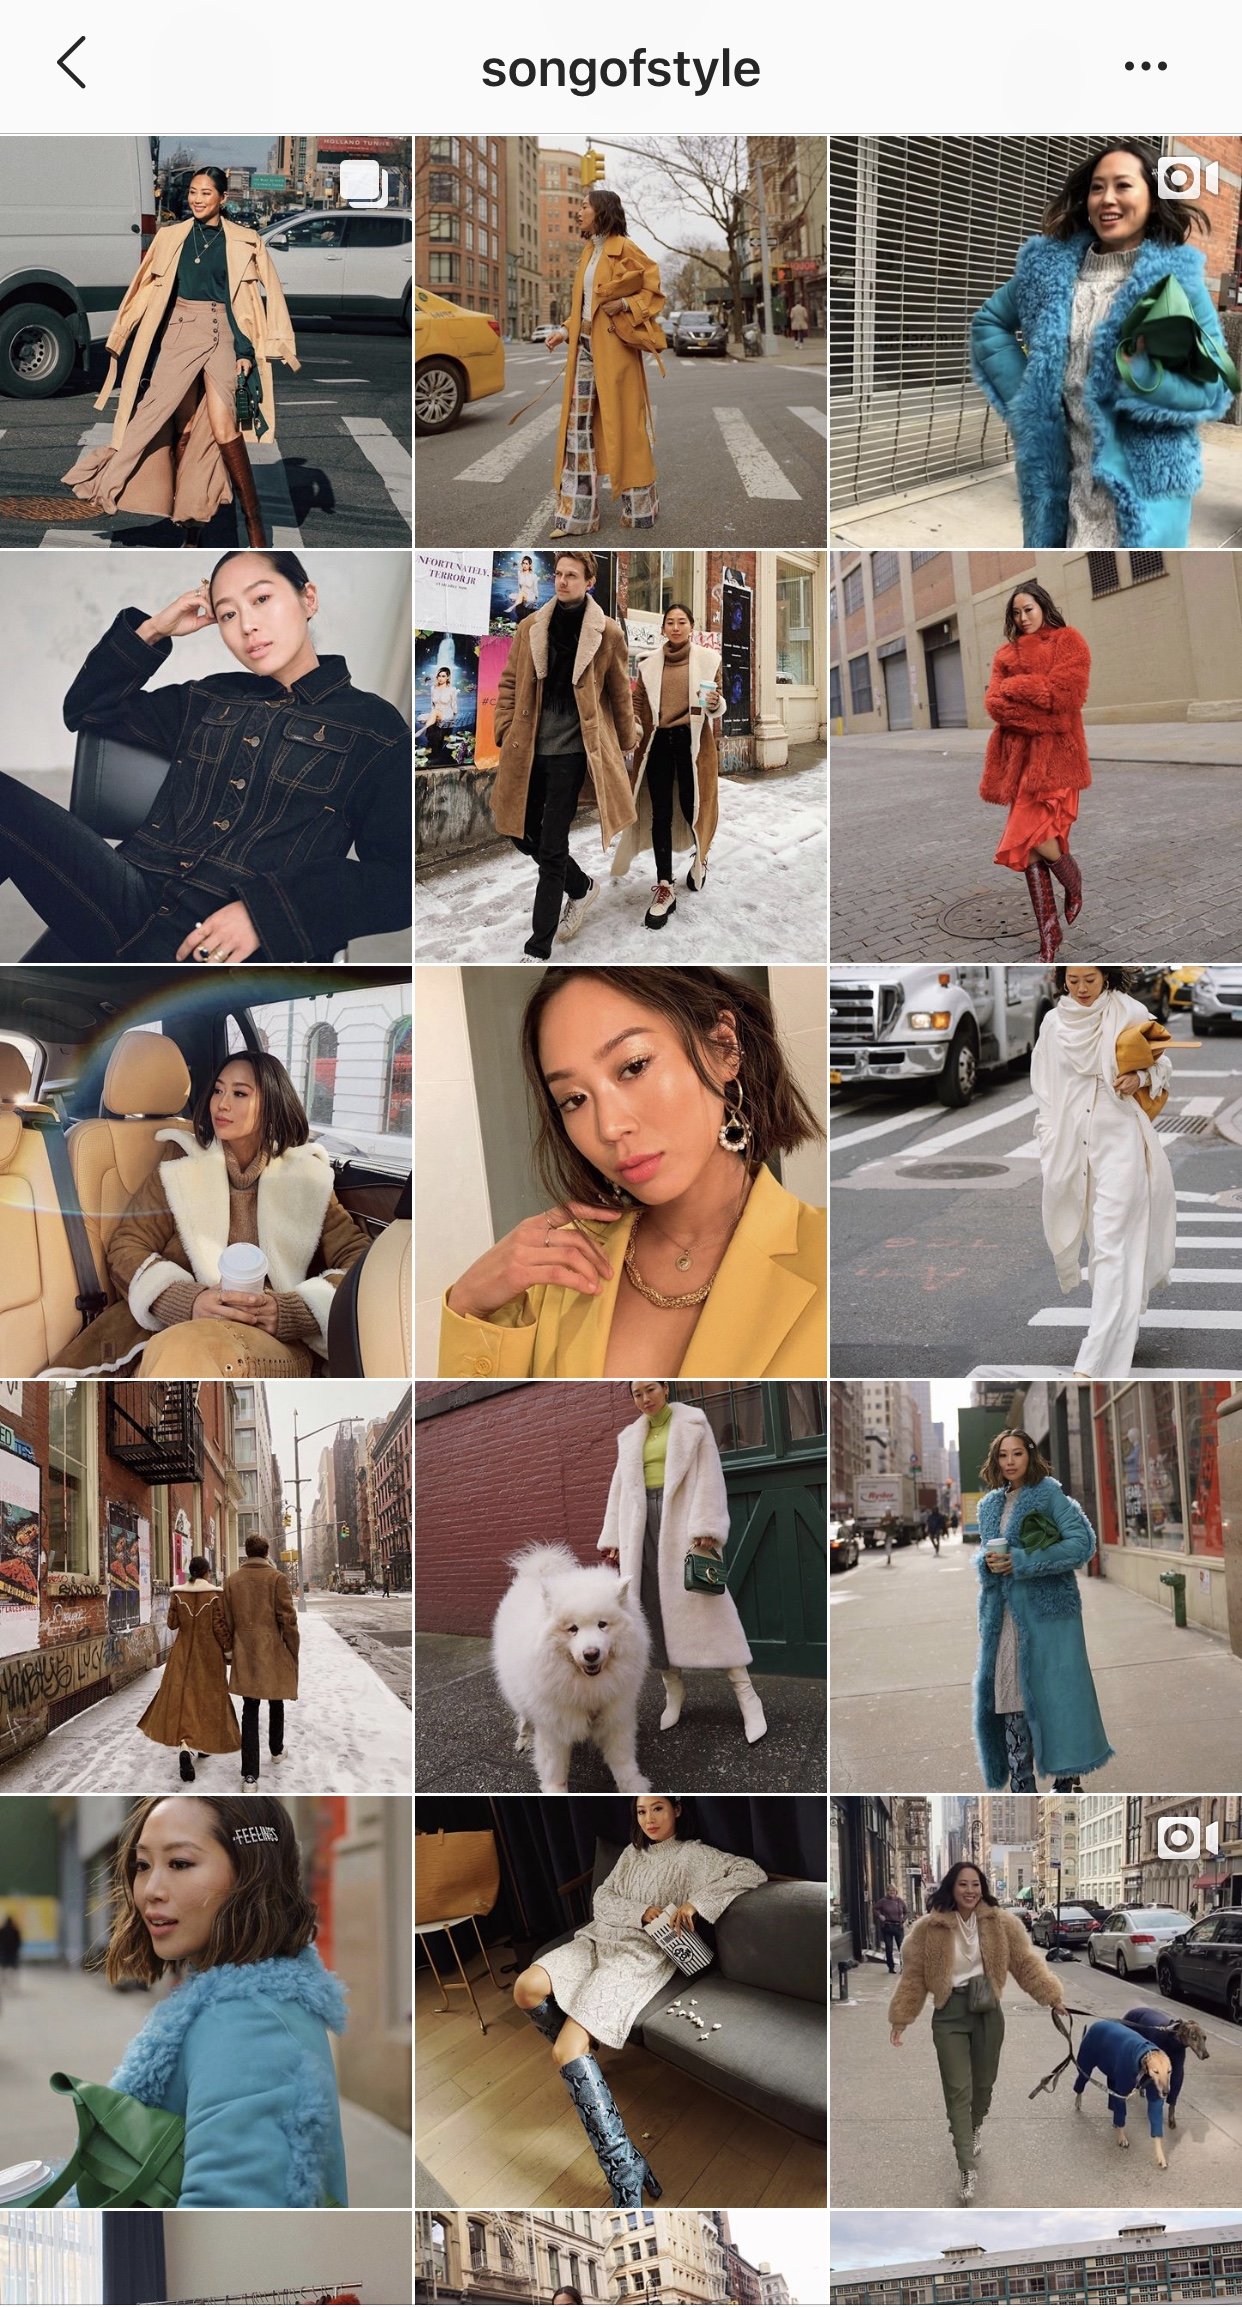 Aimee Song - No one pulls off comfort chic like she does!